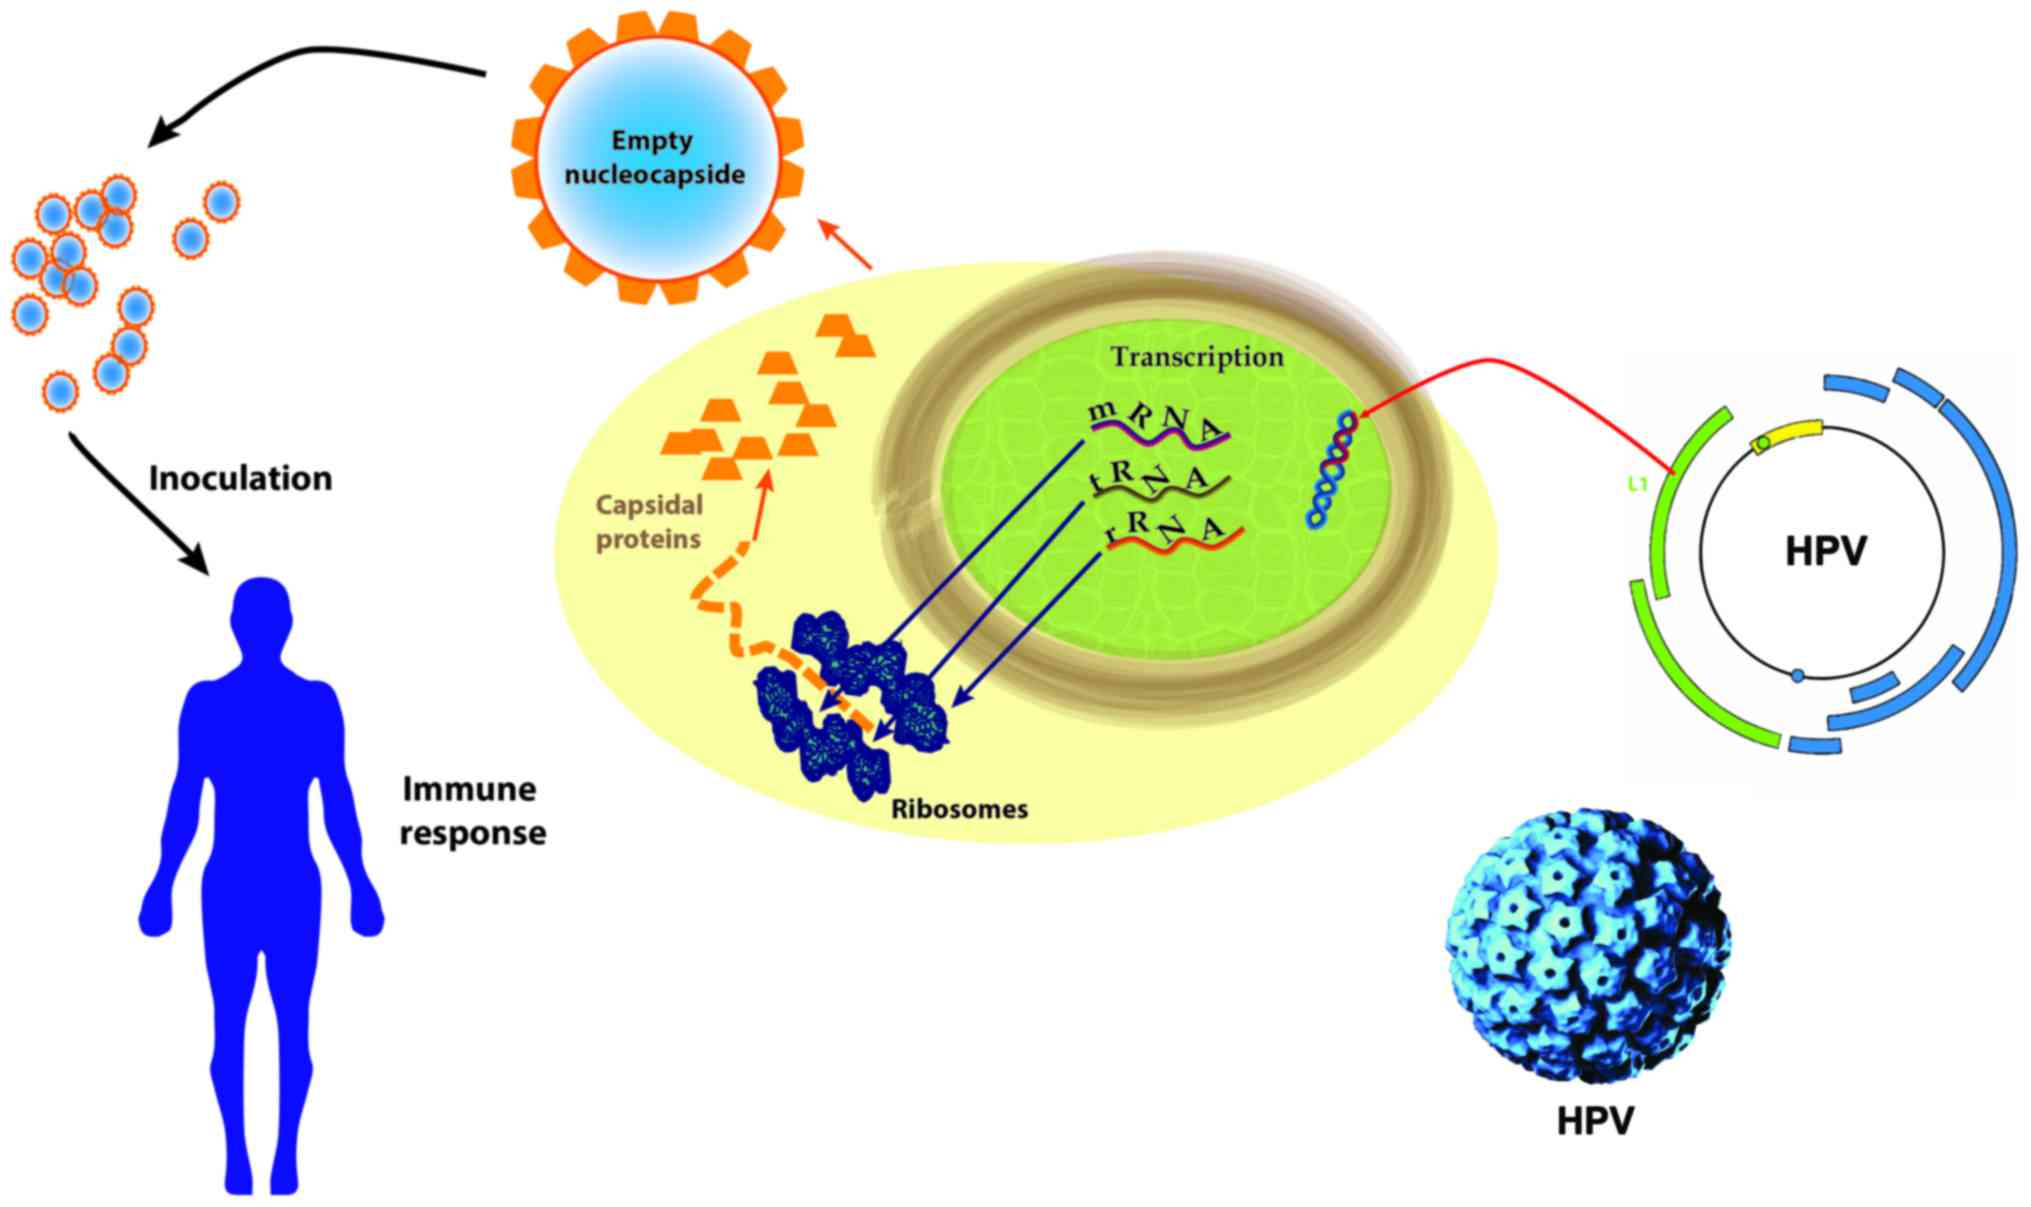 hpv human cell line)